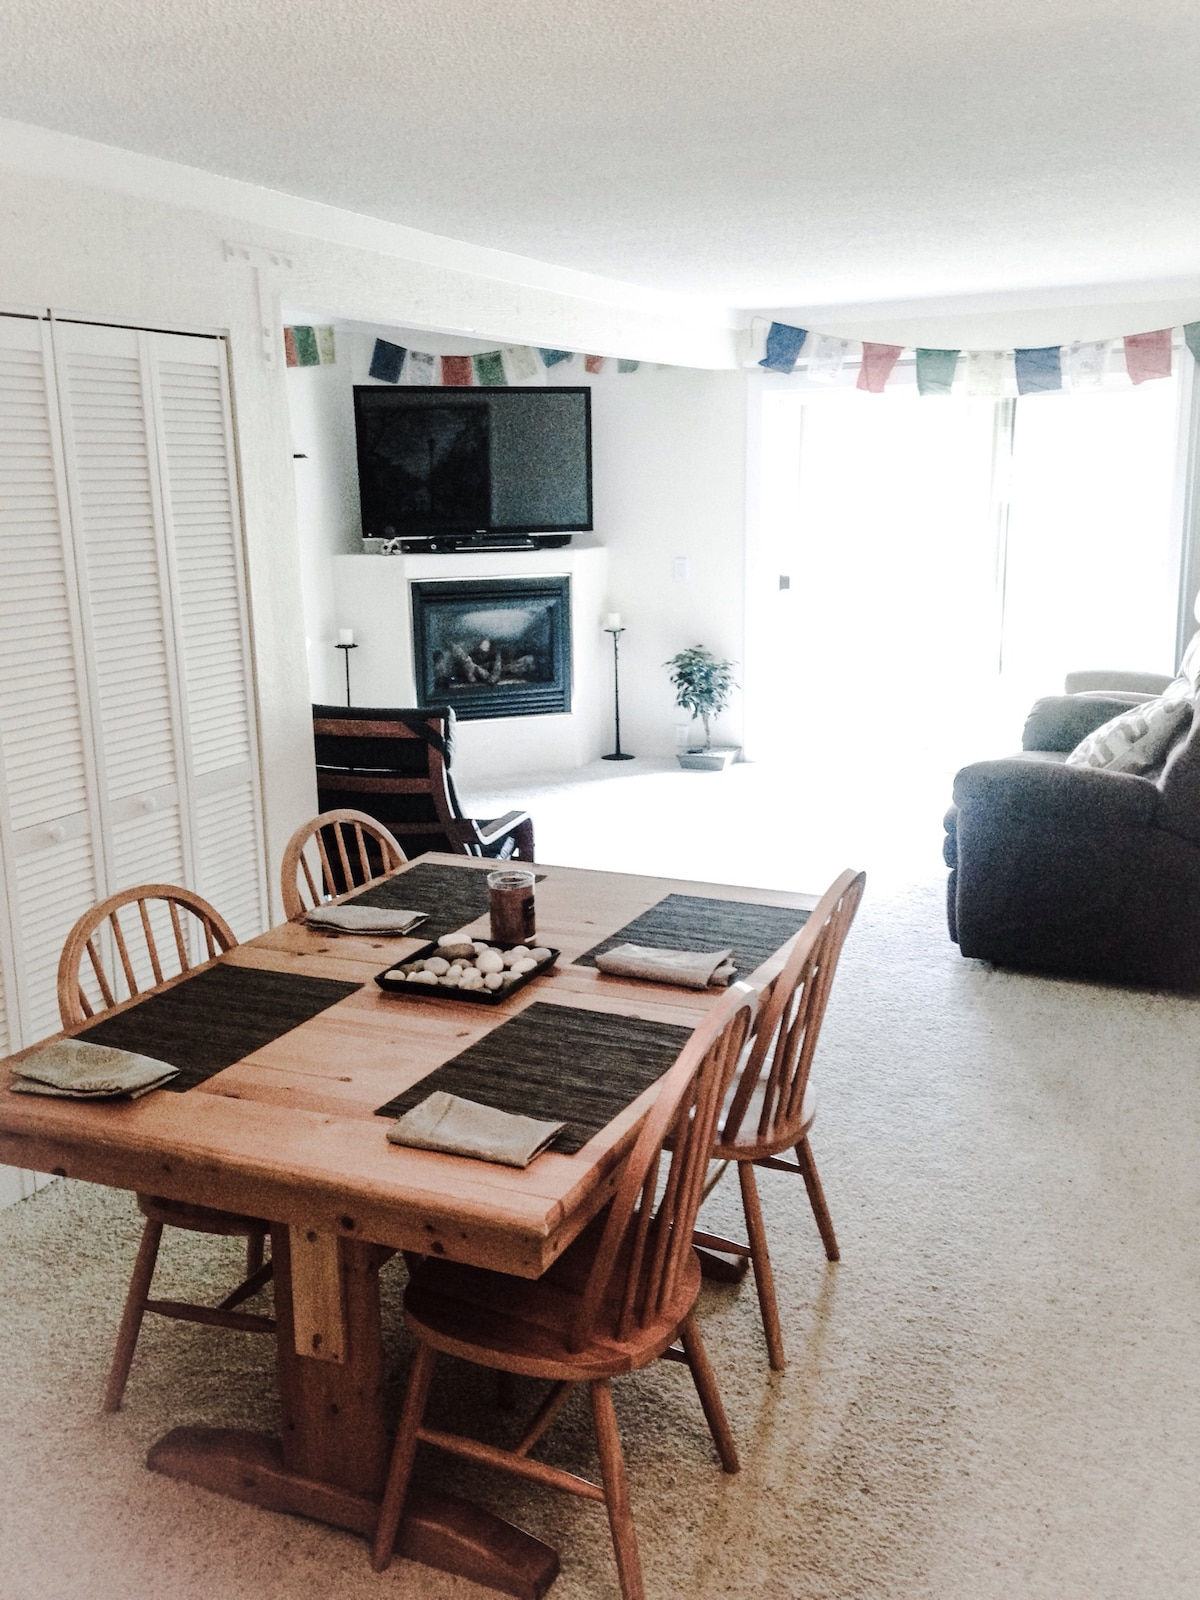 3 Bedroom Condo in Incline Village